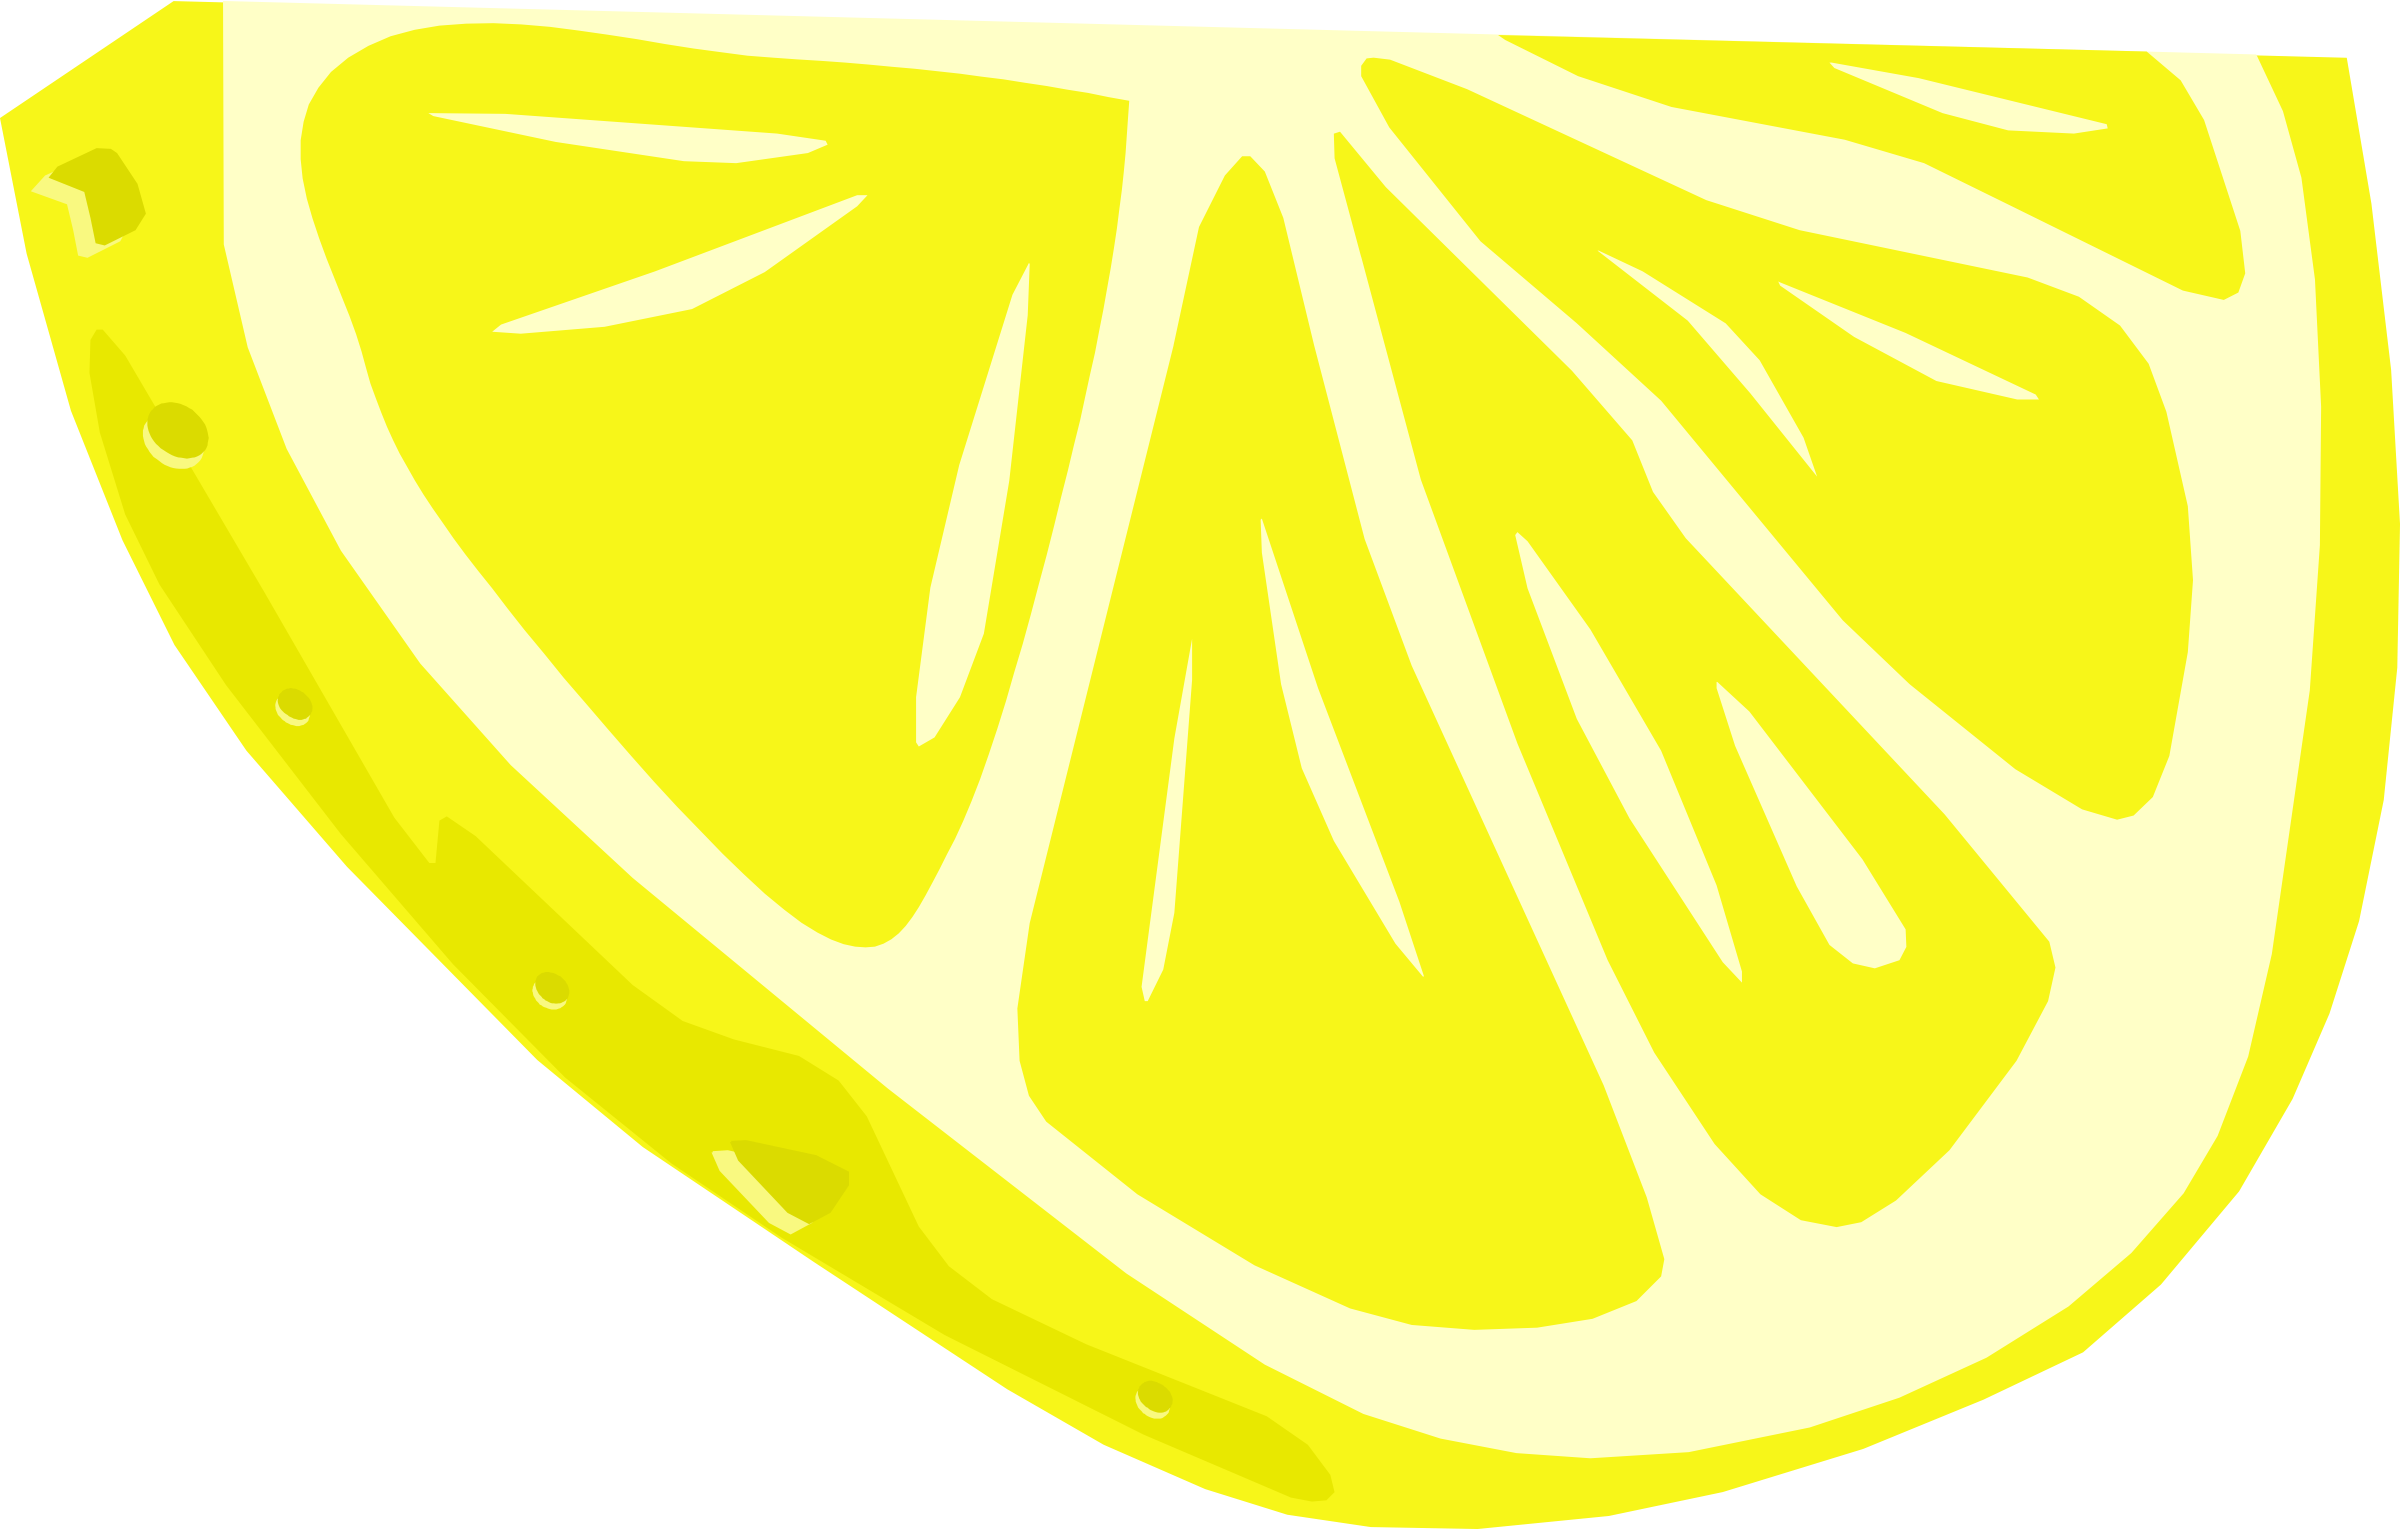 Clipart - Lemon Variations